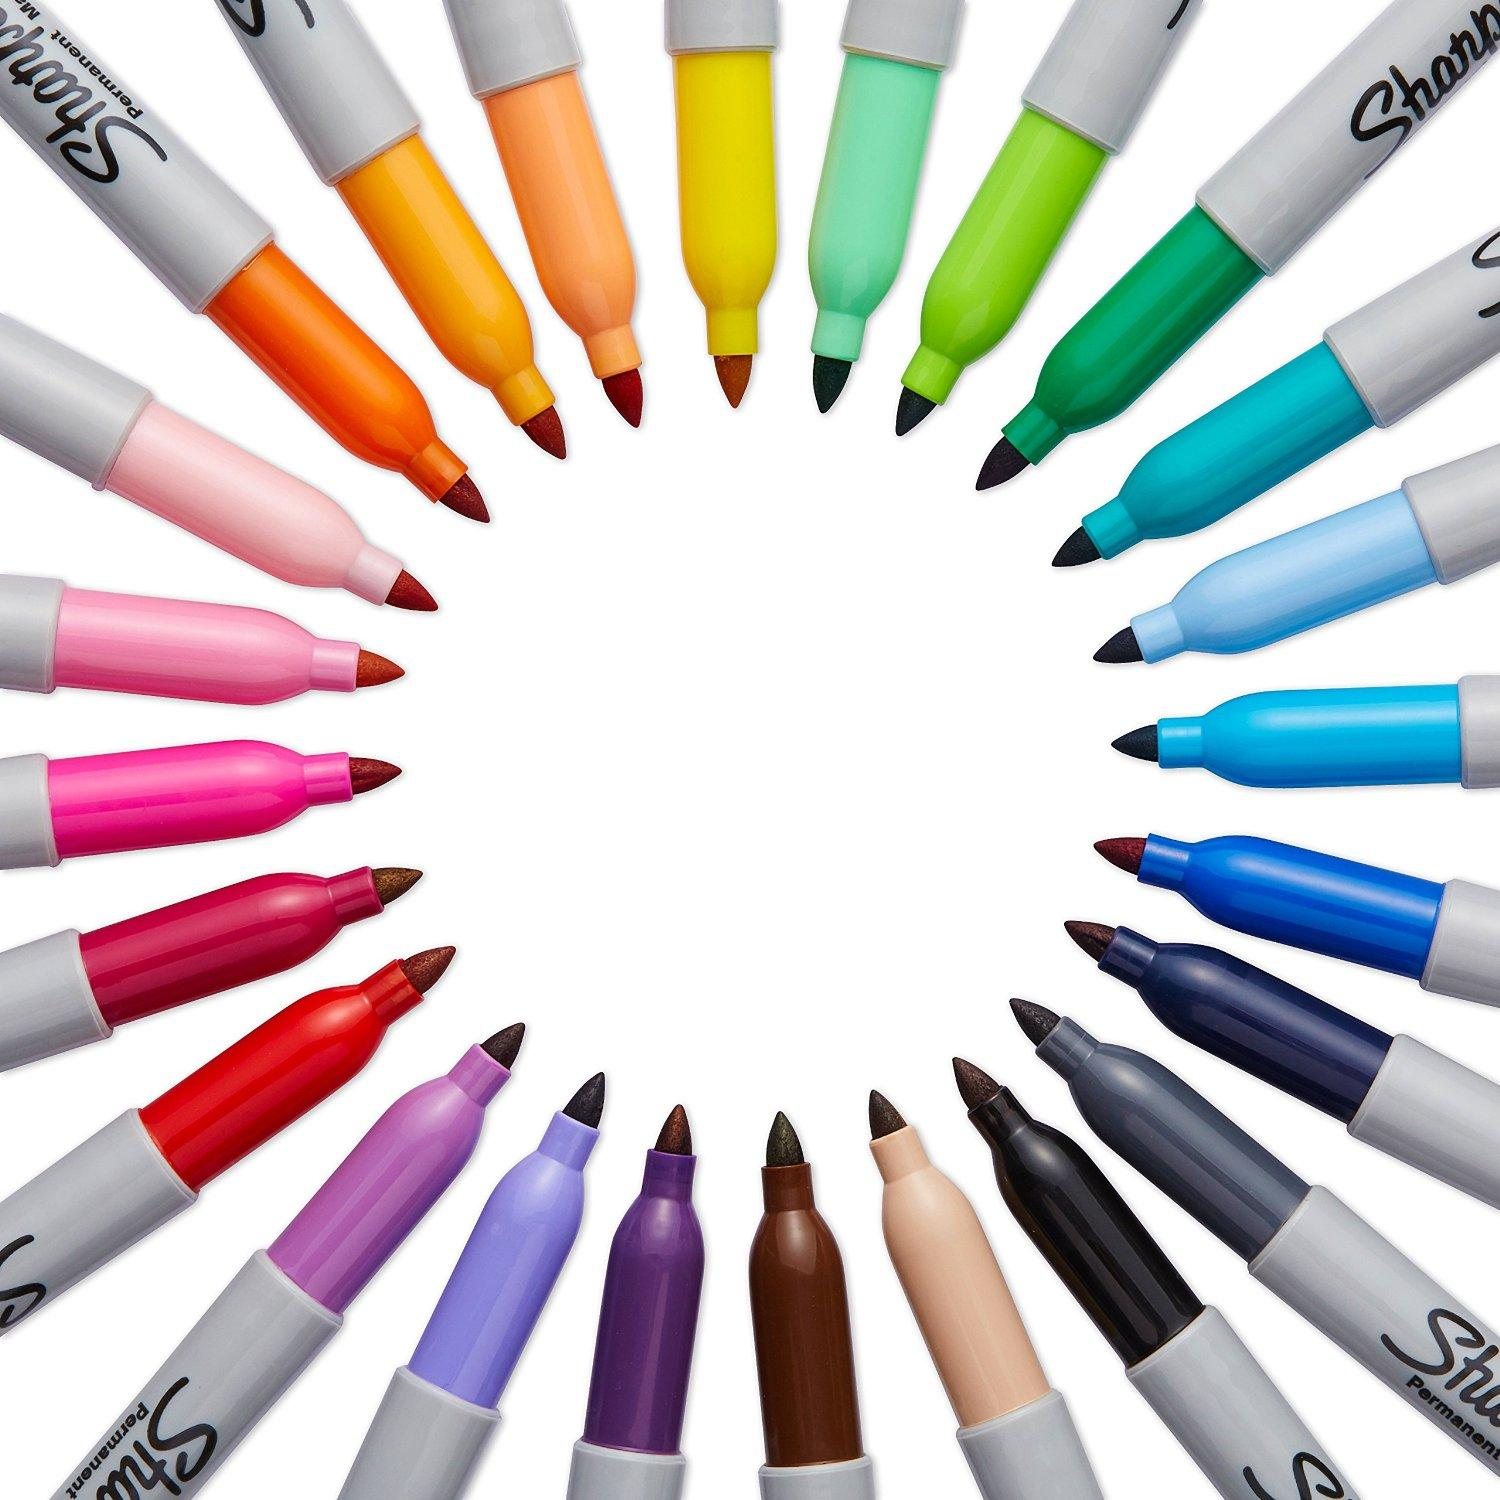 Sharpie 75846 Fine Point Permanent Marker, Assorted Colors